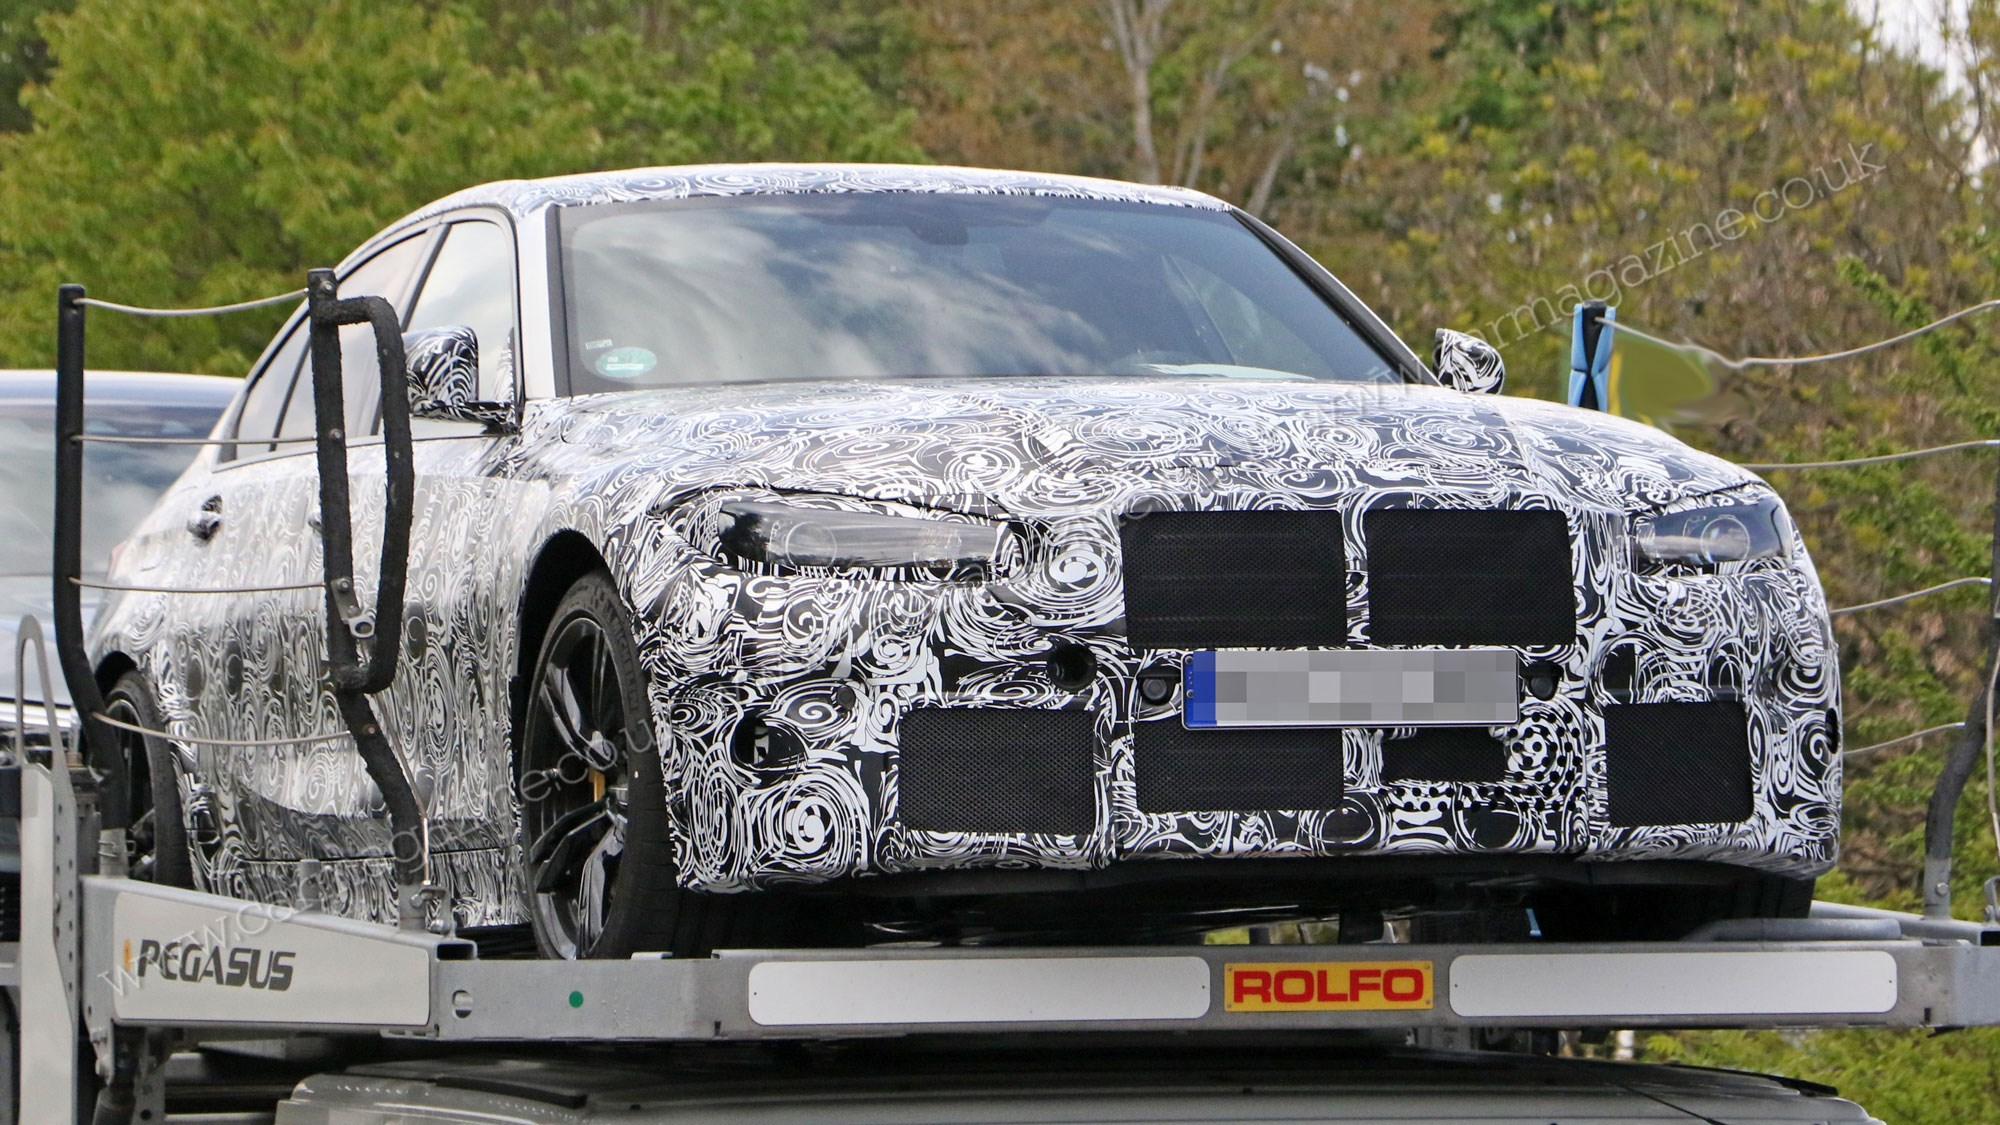 new 2020 bmw m3 (g80) news, specs, prices car magazinenew 2020 bmw m3 steps out in camo gear